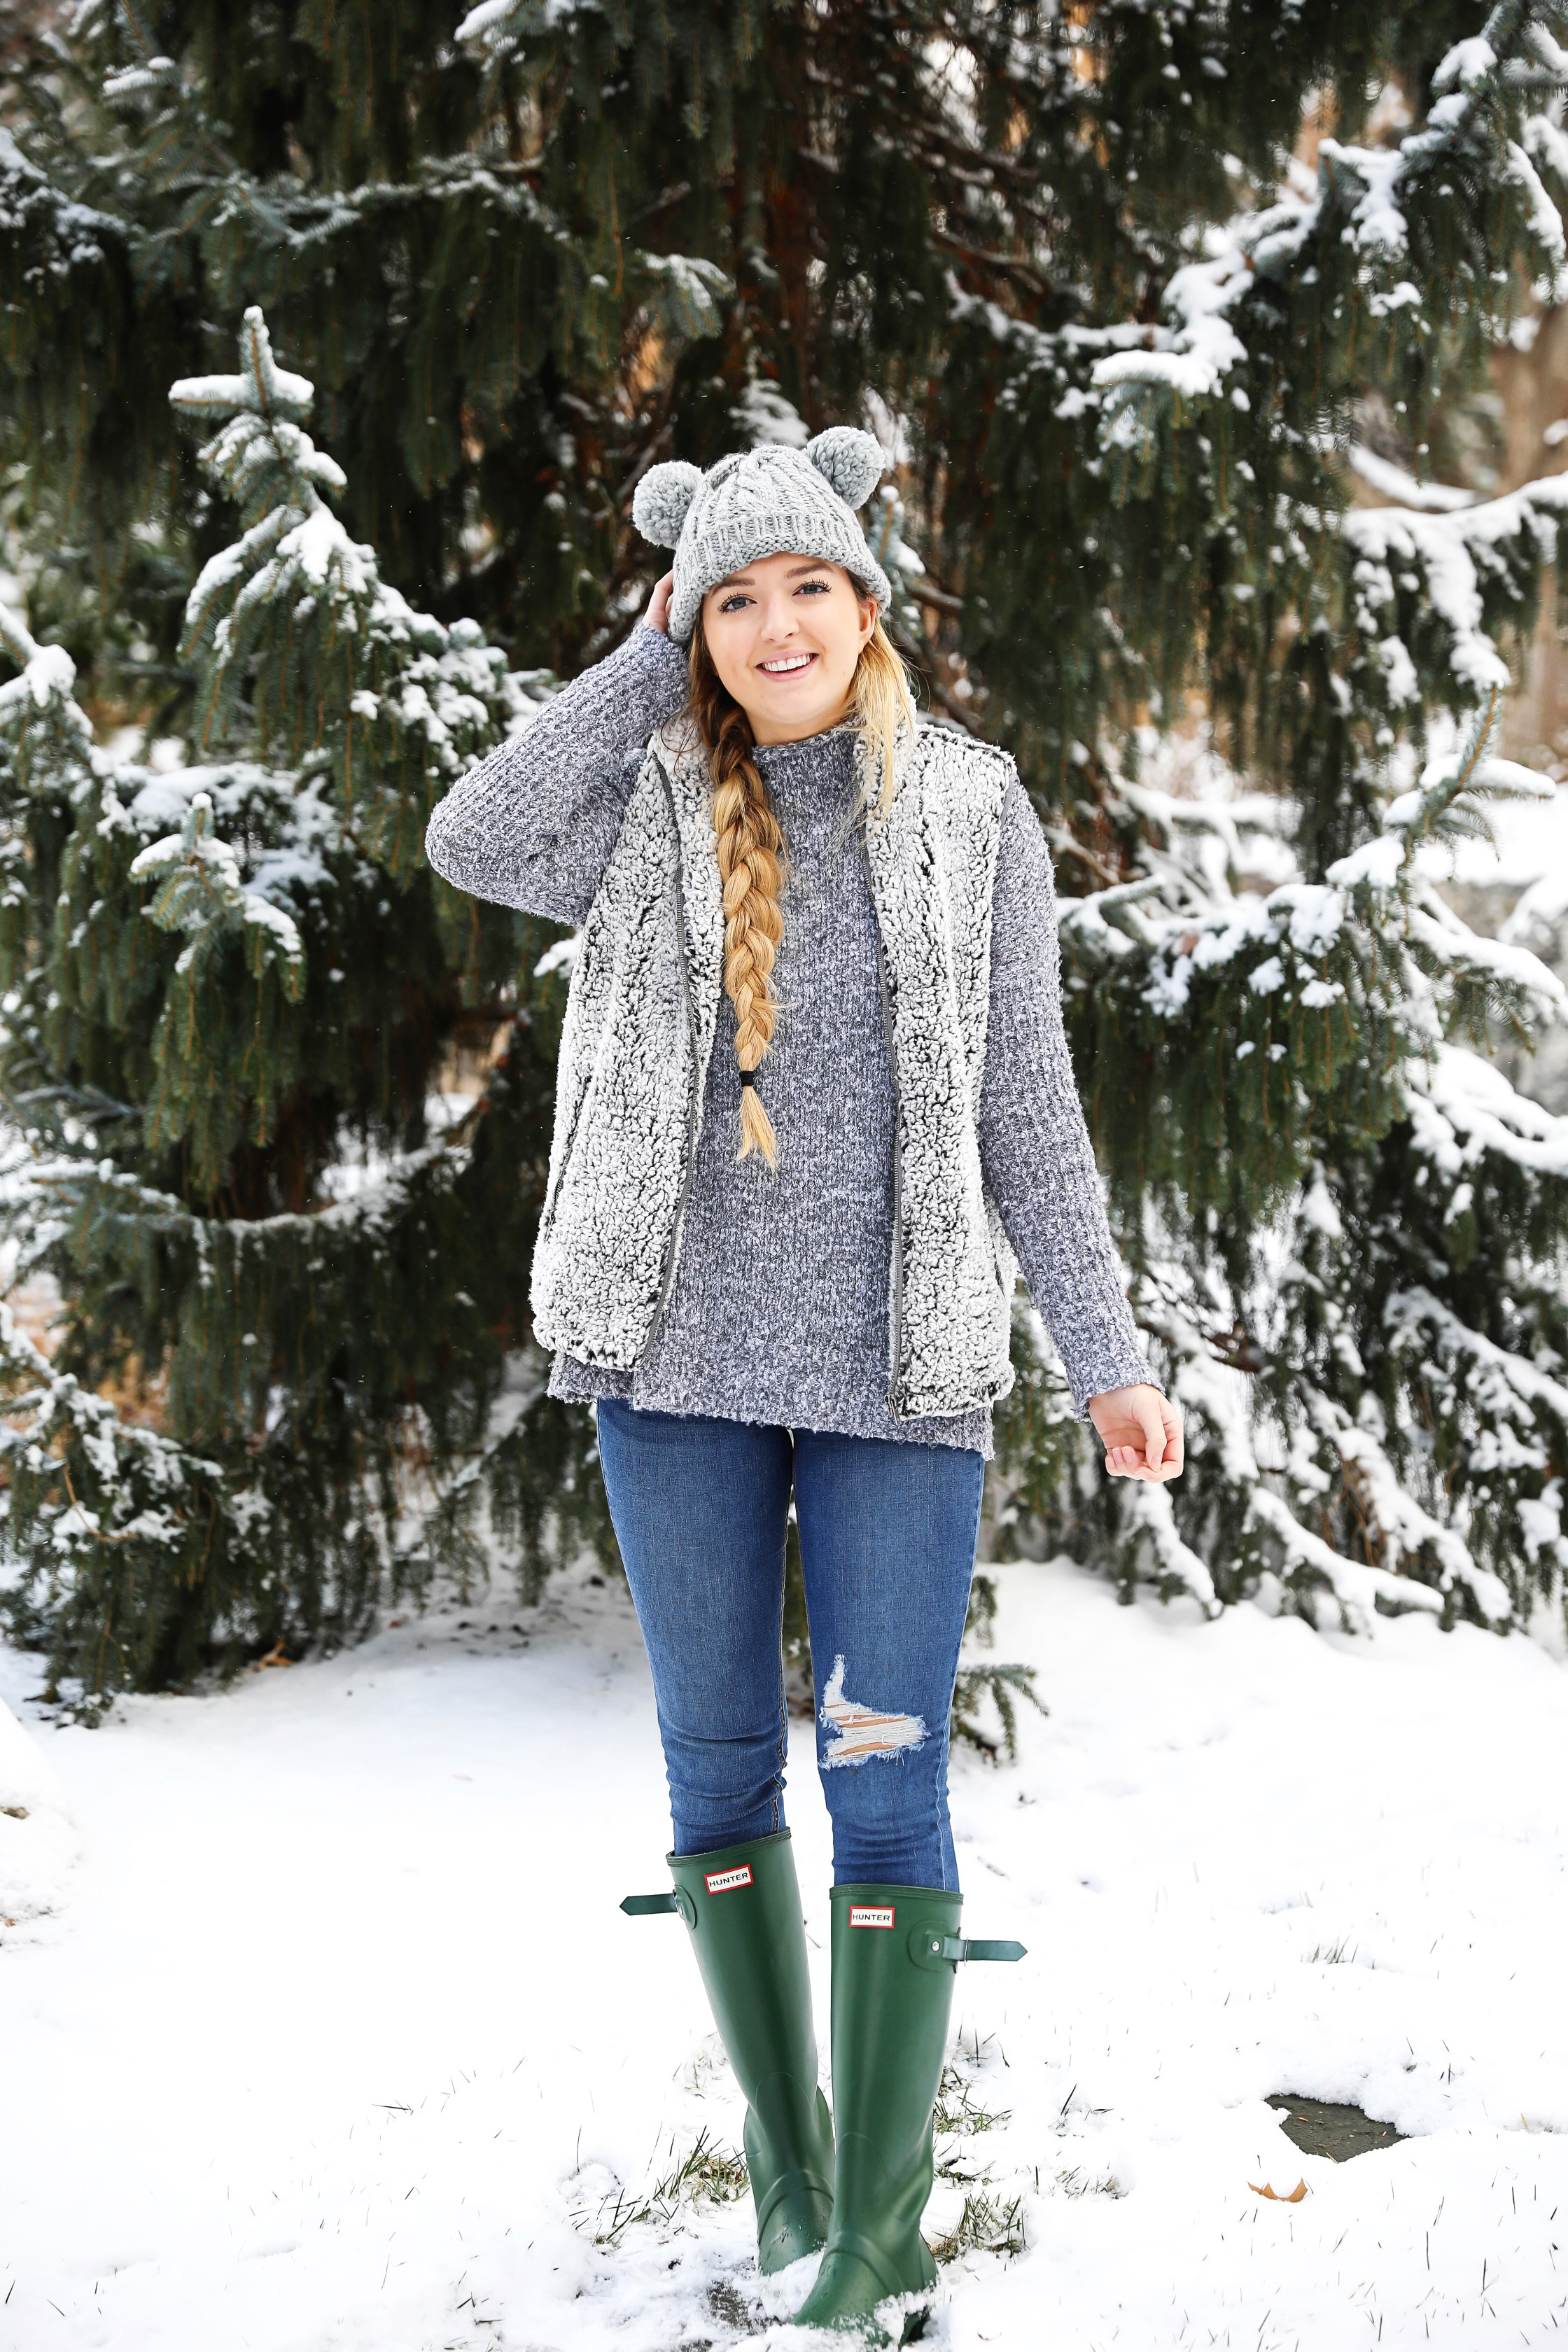 This sherpa vest is the coziest thing I own! I paired it with this soft grey sweater that has a cute turtleneck. I am also wearing my grey pom pom beanie! It has two pom poms which is super cute! I love this winter outfit! Details on fashion blog daily dose of charm by lauren lindmark